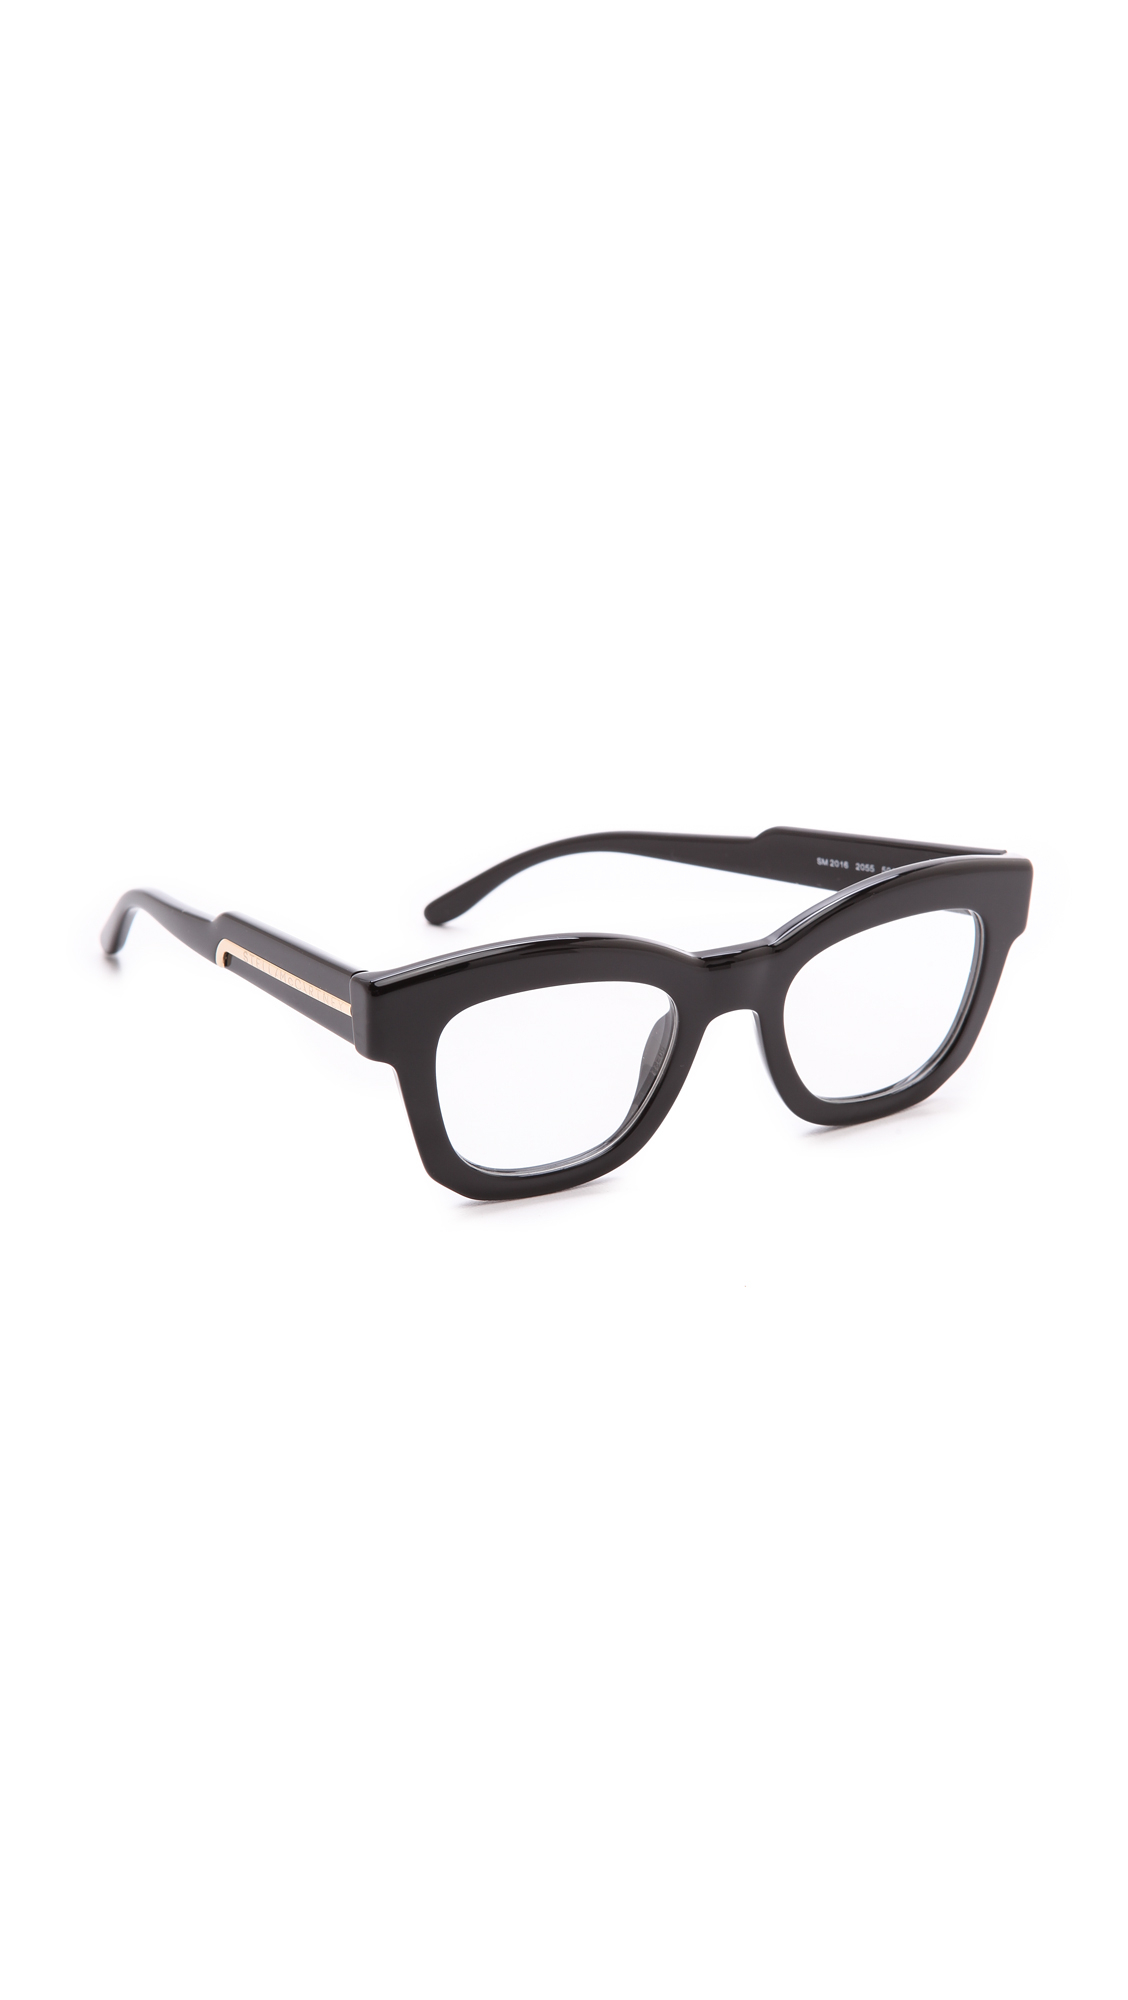 Thick Frame Glasses Black : Stella Mccartney Thick Frame Glasses - Brown in Black Lyst